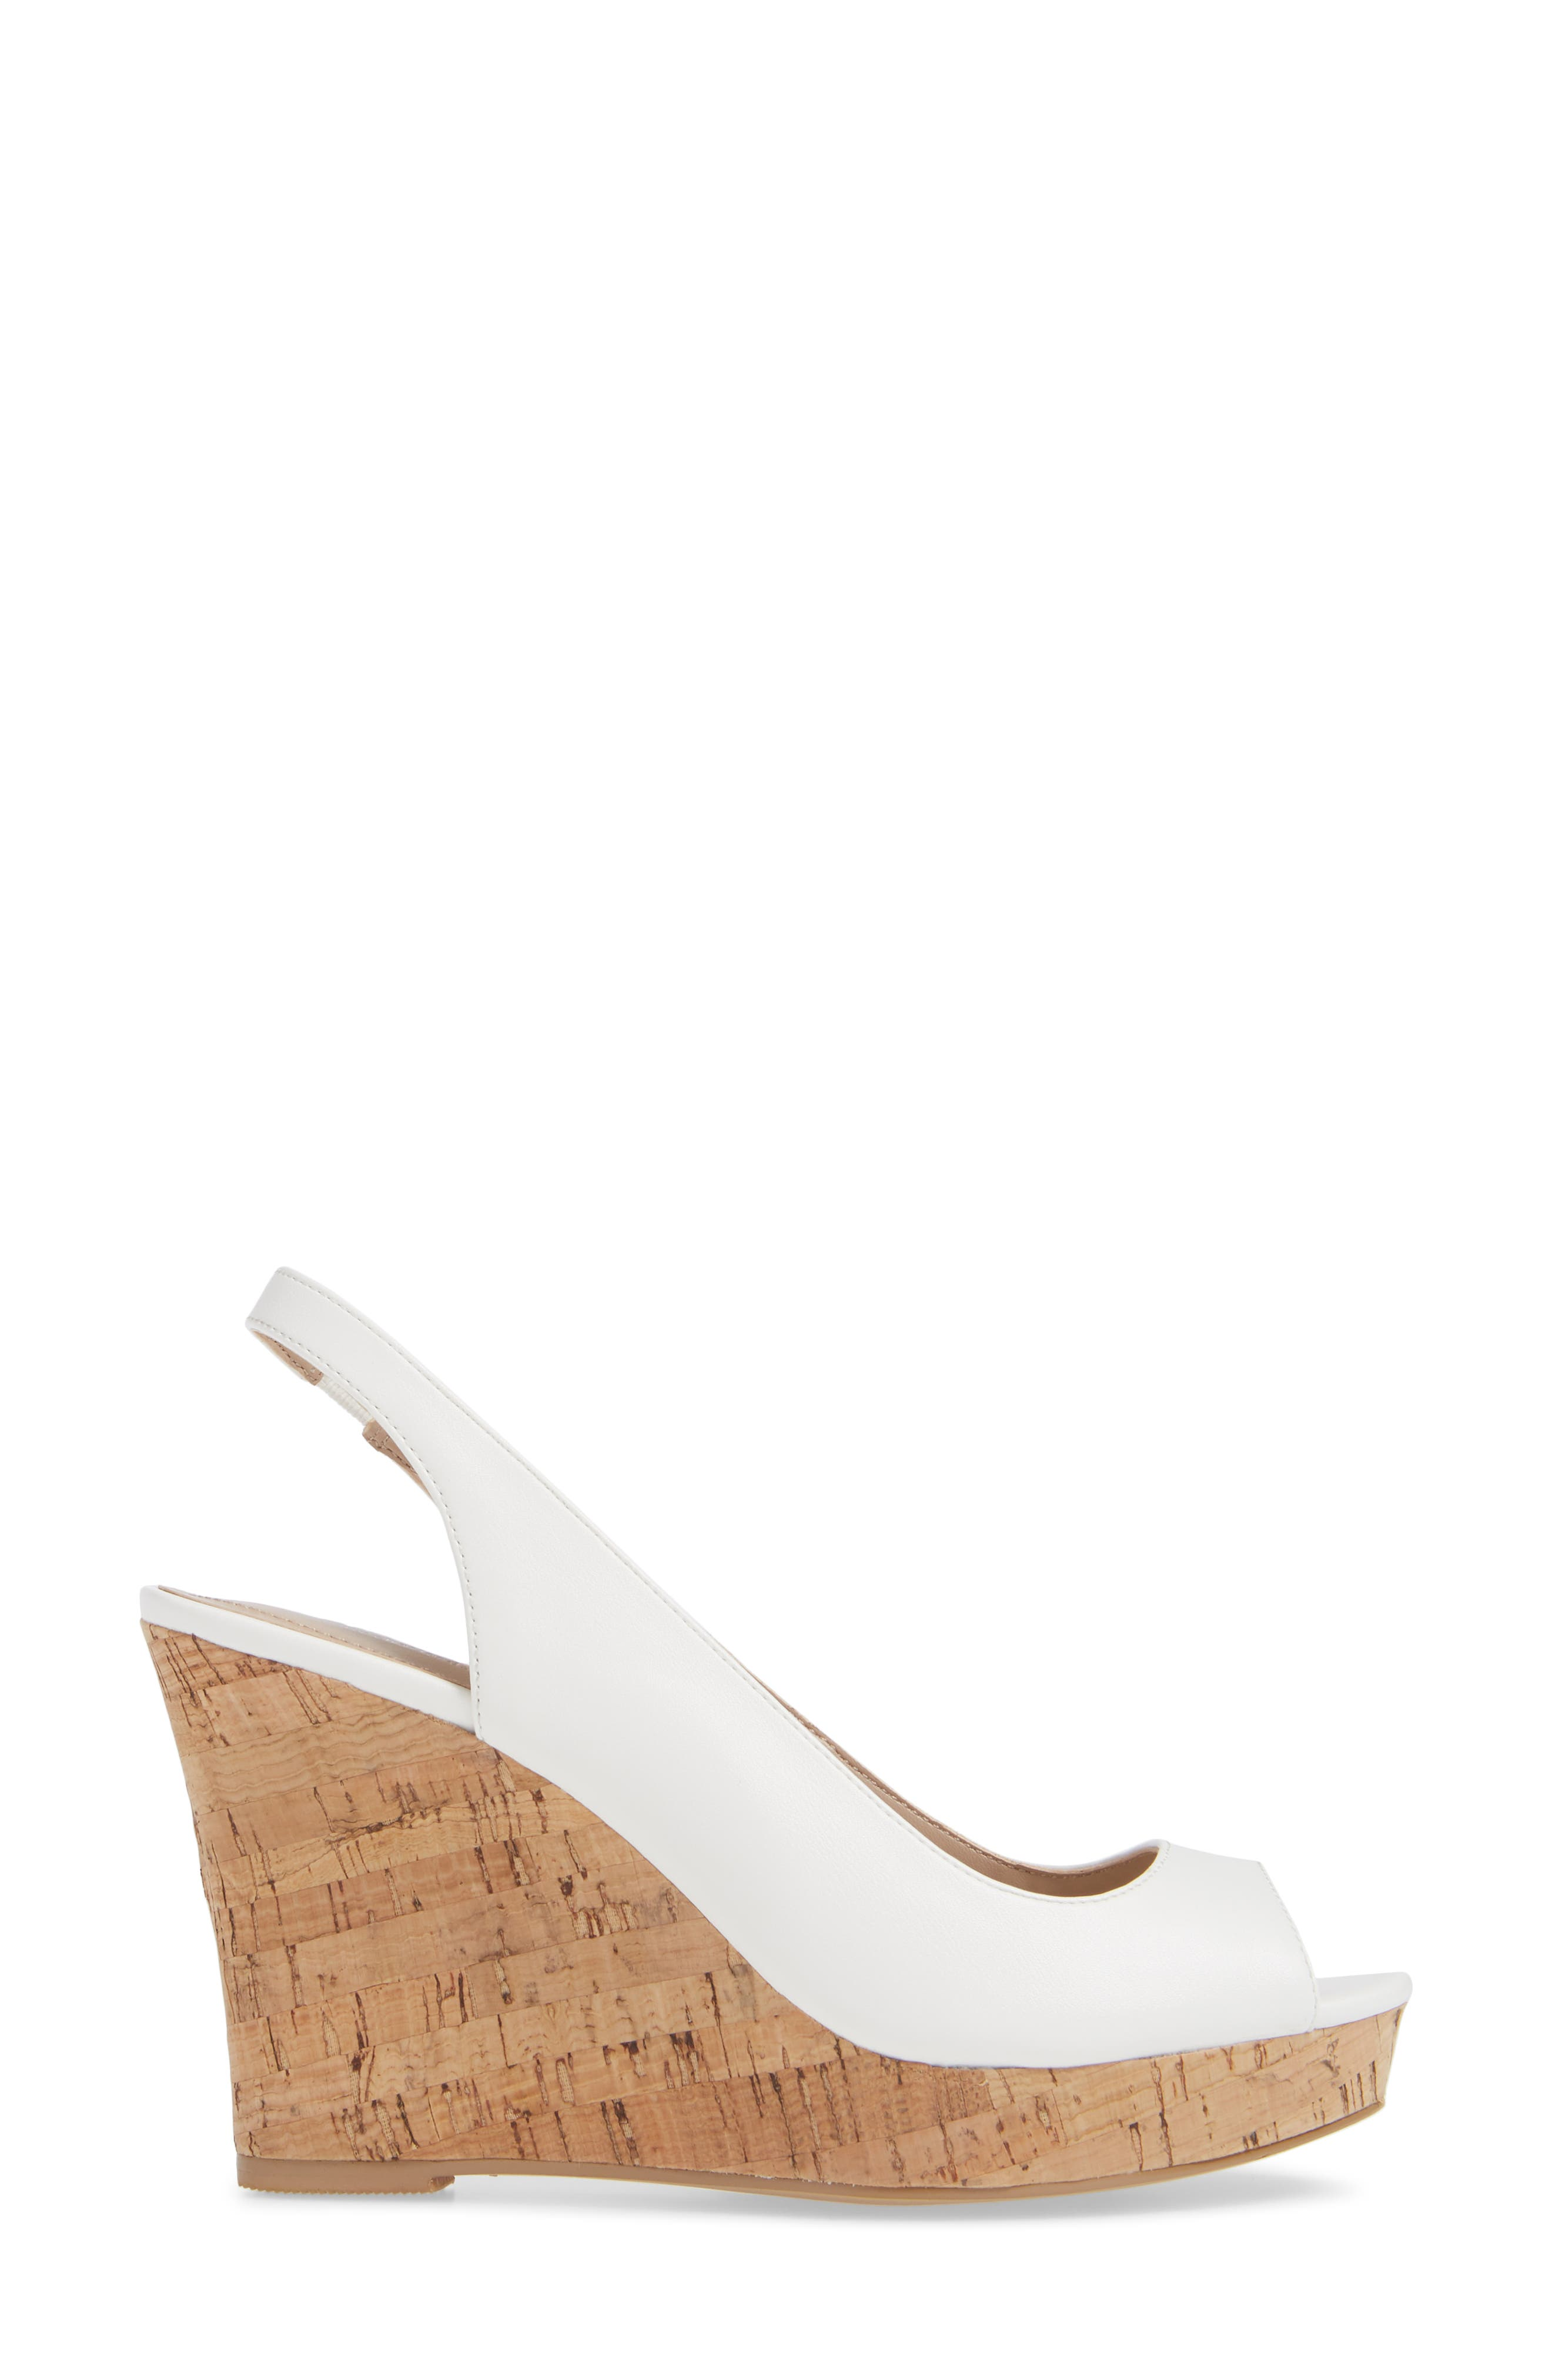 CHARLES BY CHARLES DAVID, Leandra Slingback Wedge, Alternate thumbnail 3, color, 100